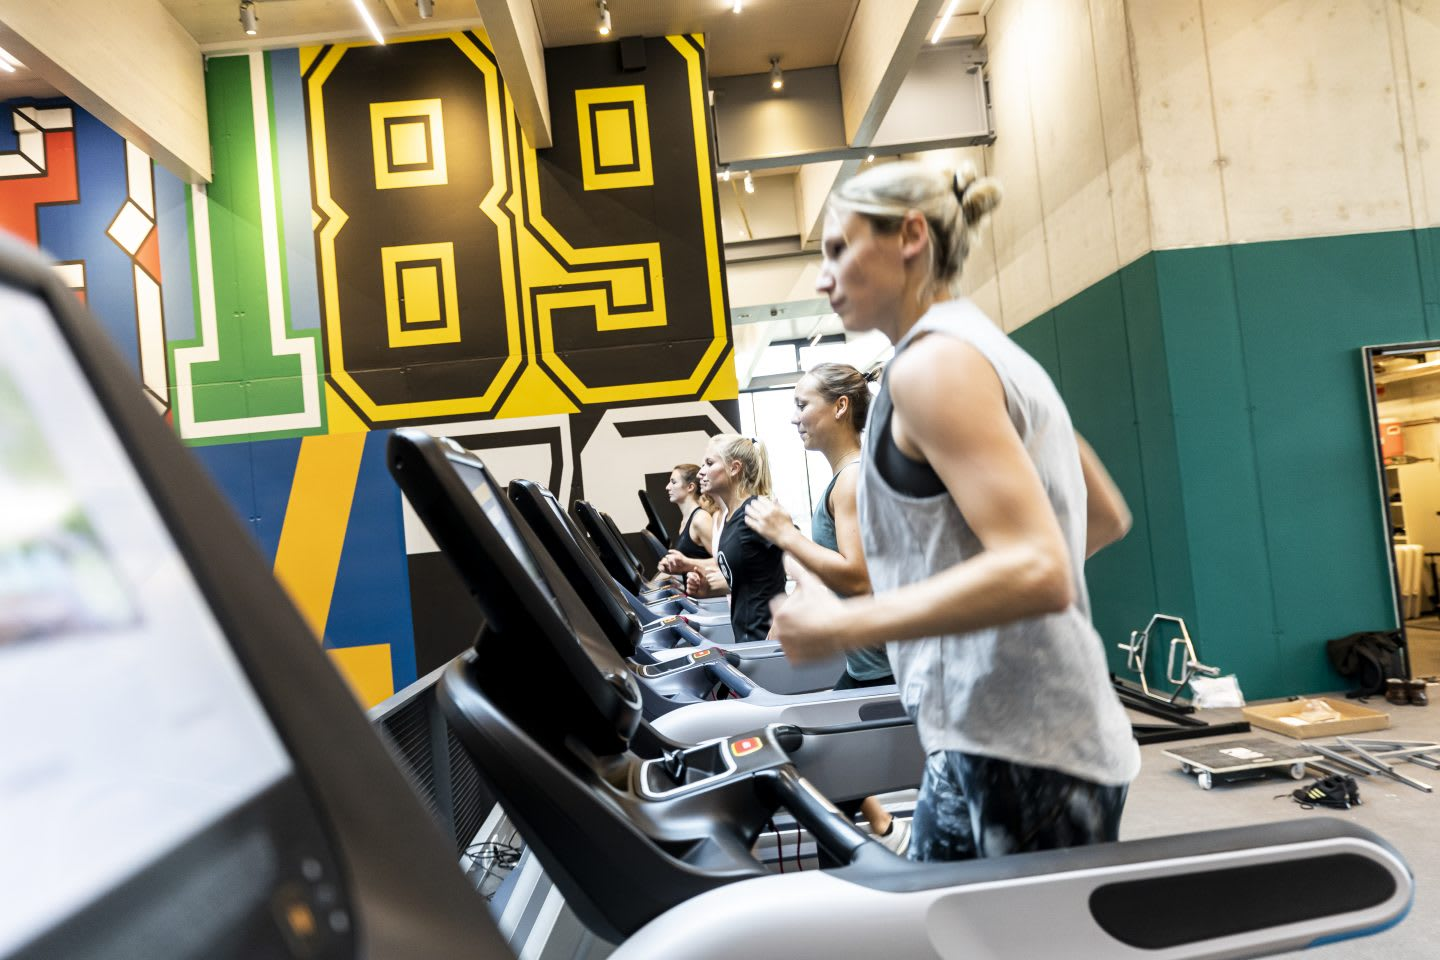 Woman wearing tanktop running on treadmill at a gym, GYM, Herzogenaurach, adidas, employees, workplace, fitness. sports, culture, active, health, lifestyle